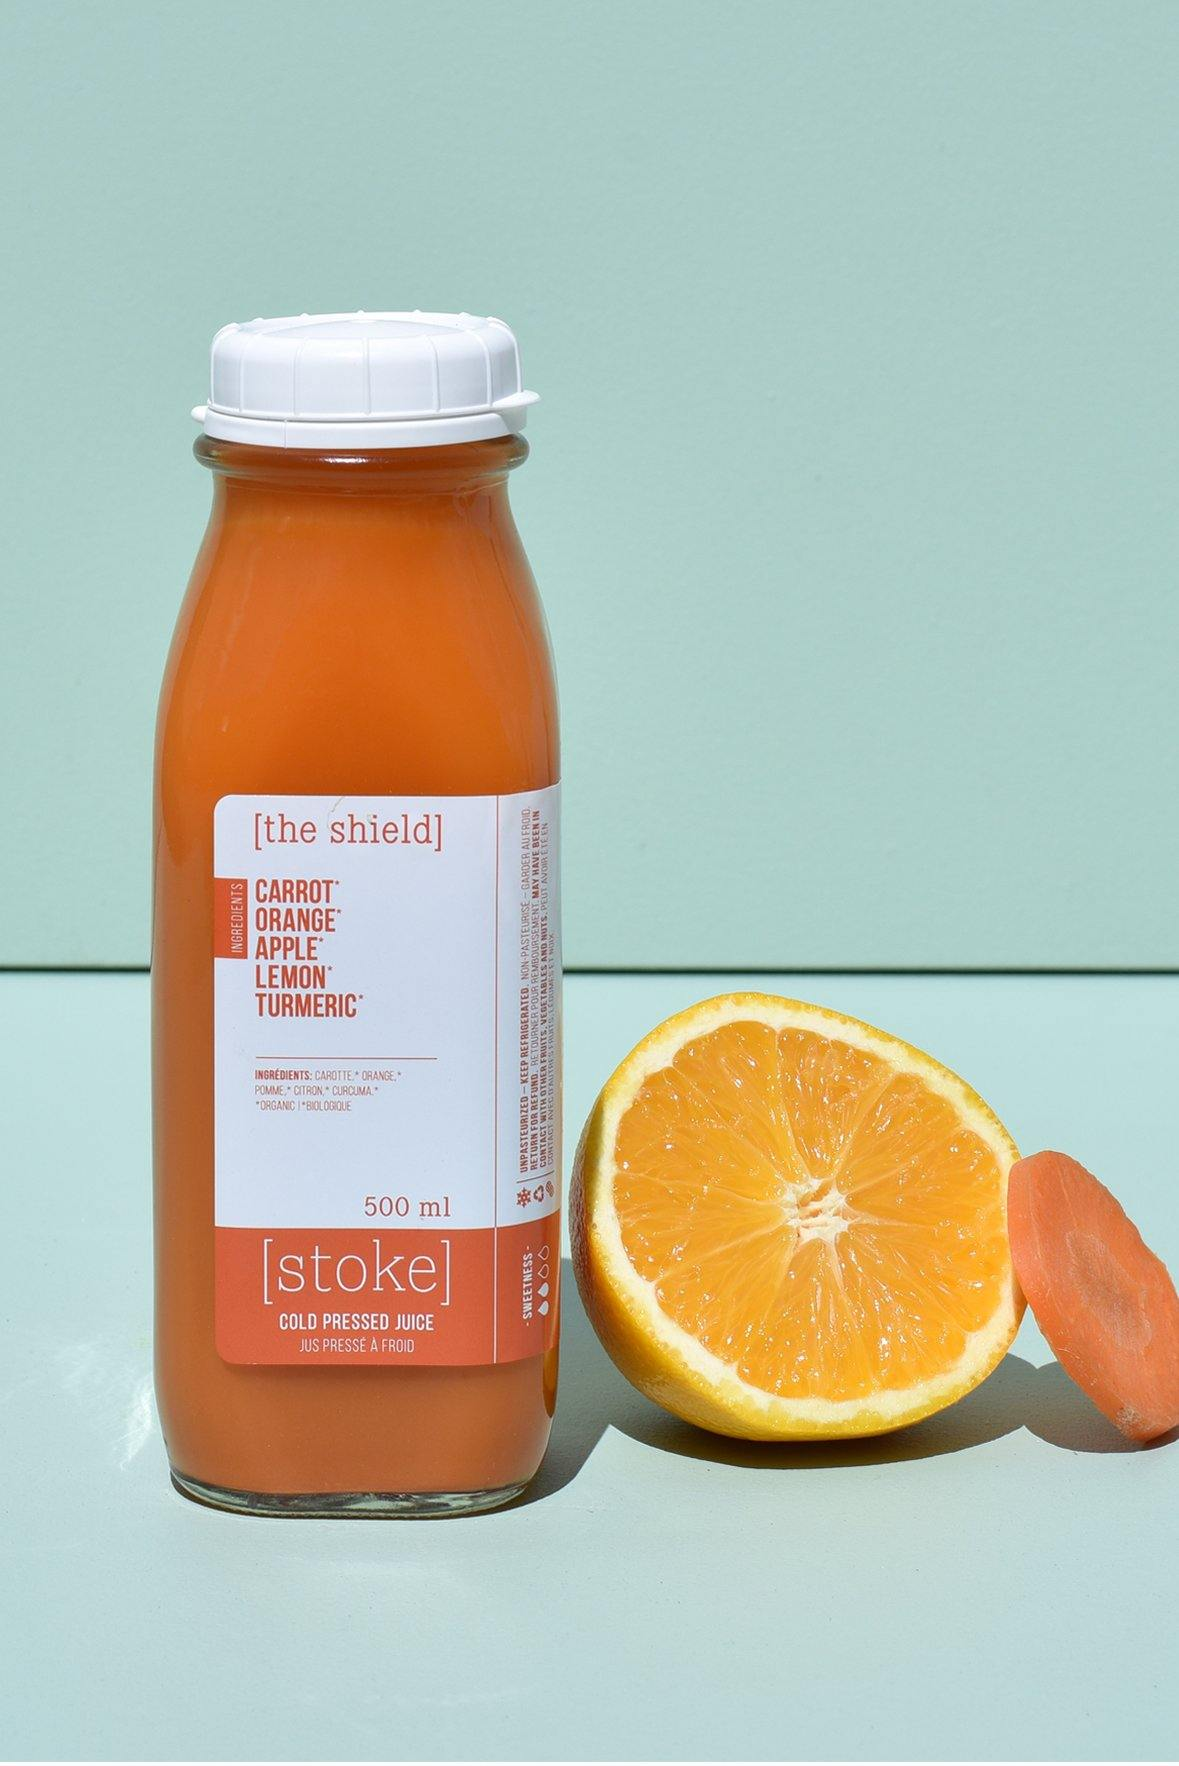 [ the shield ] cold pressed juice with carrot and orange